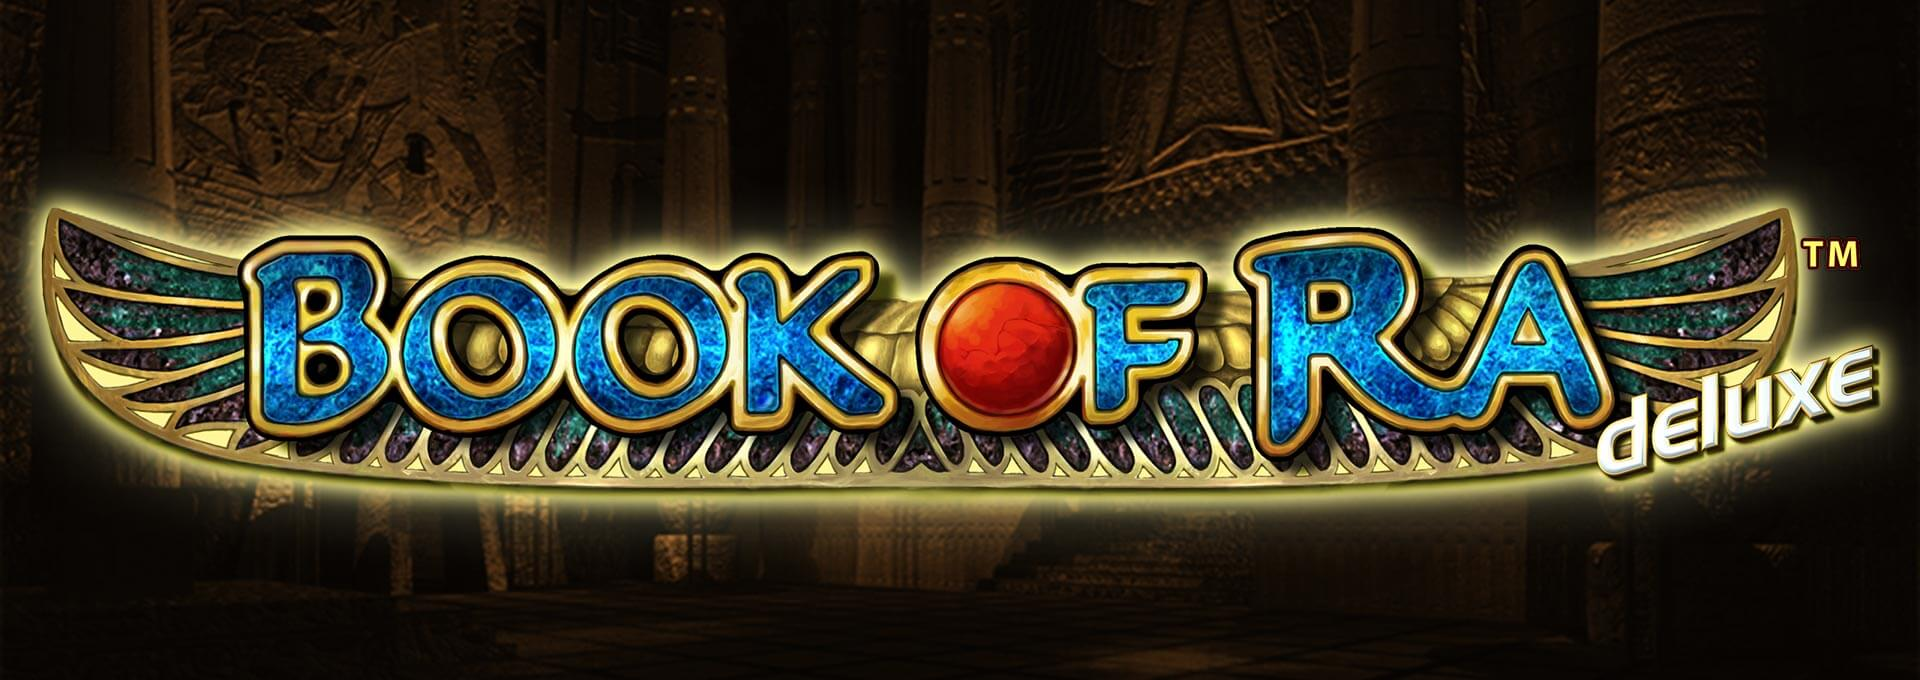 online casino deutschland book of ra deluxe slot